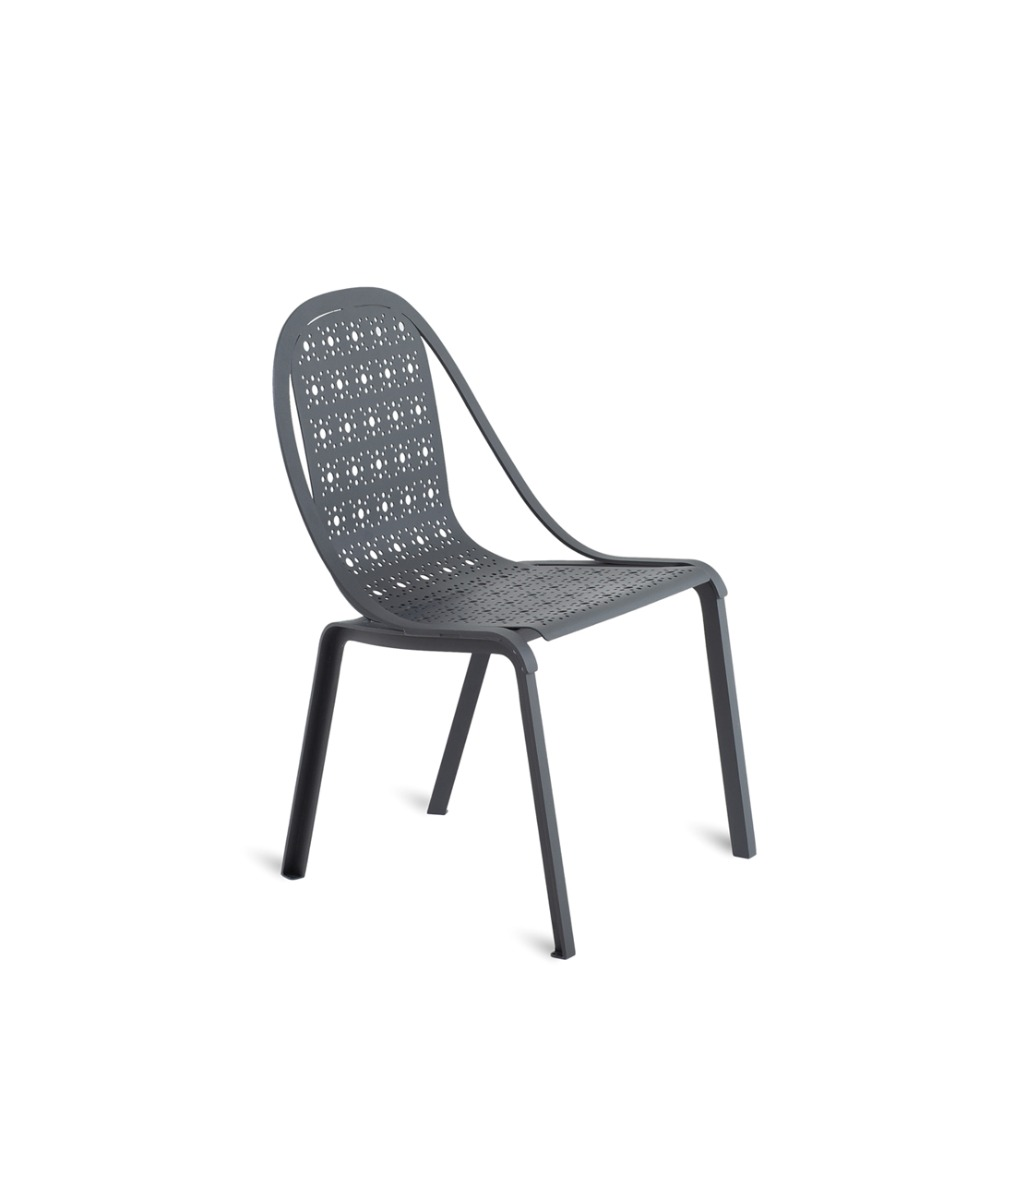 Stackable chair Tline - TISEBI_1